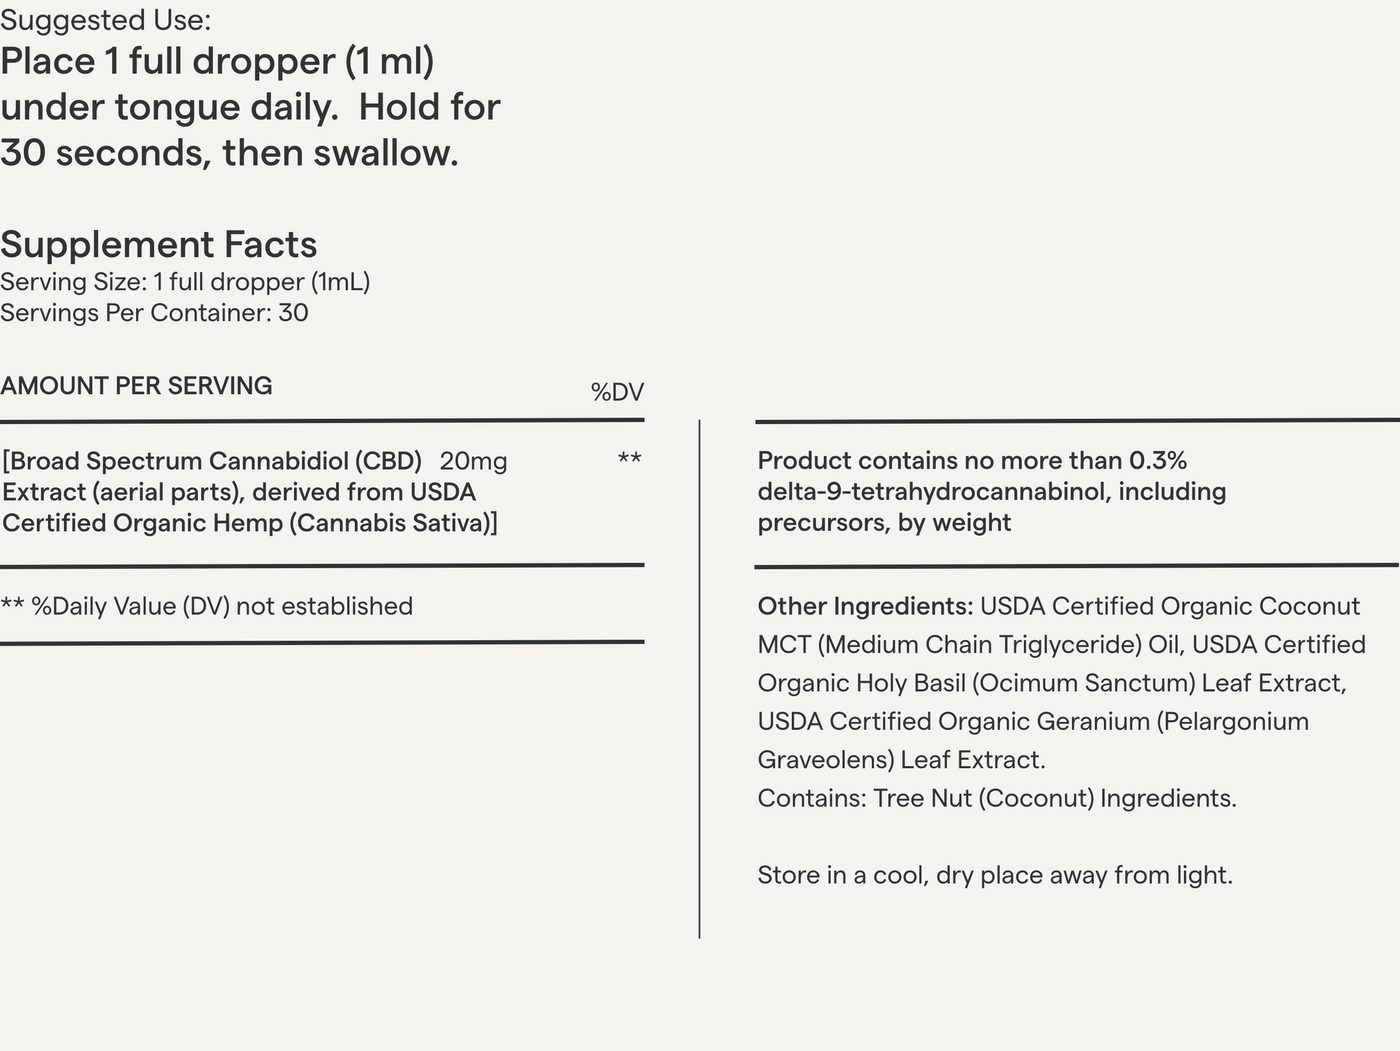 Infographic of supplement information